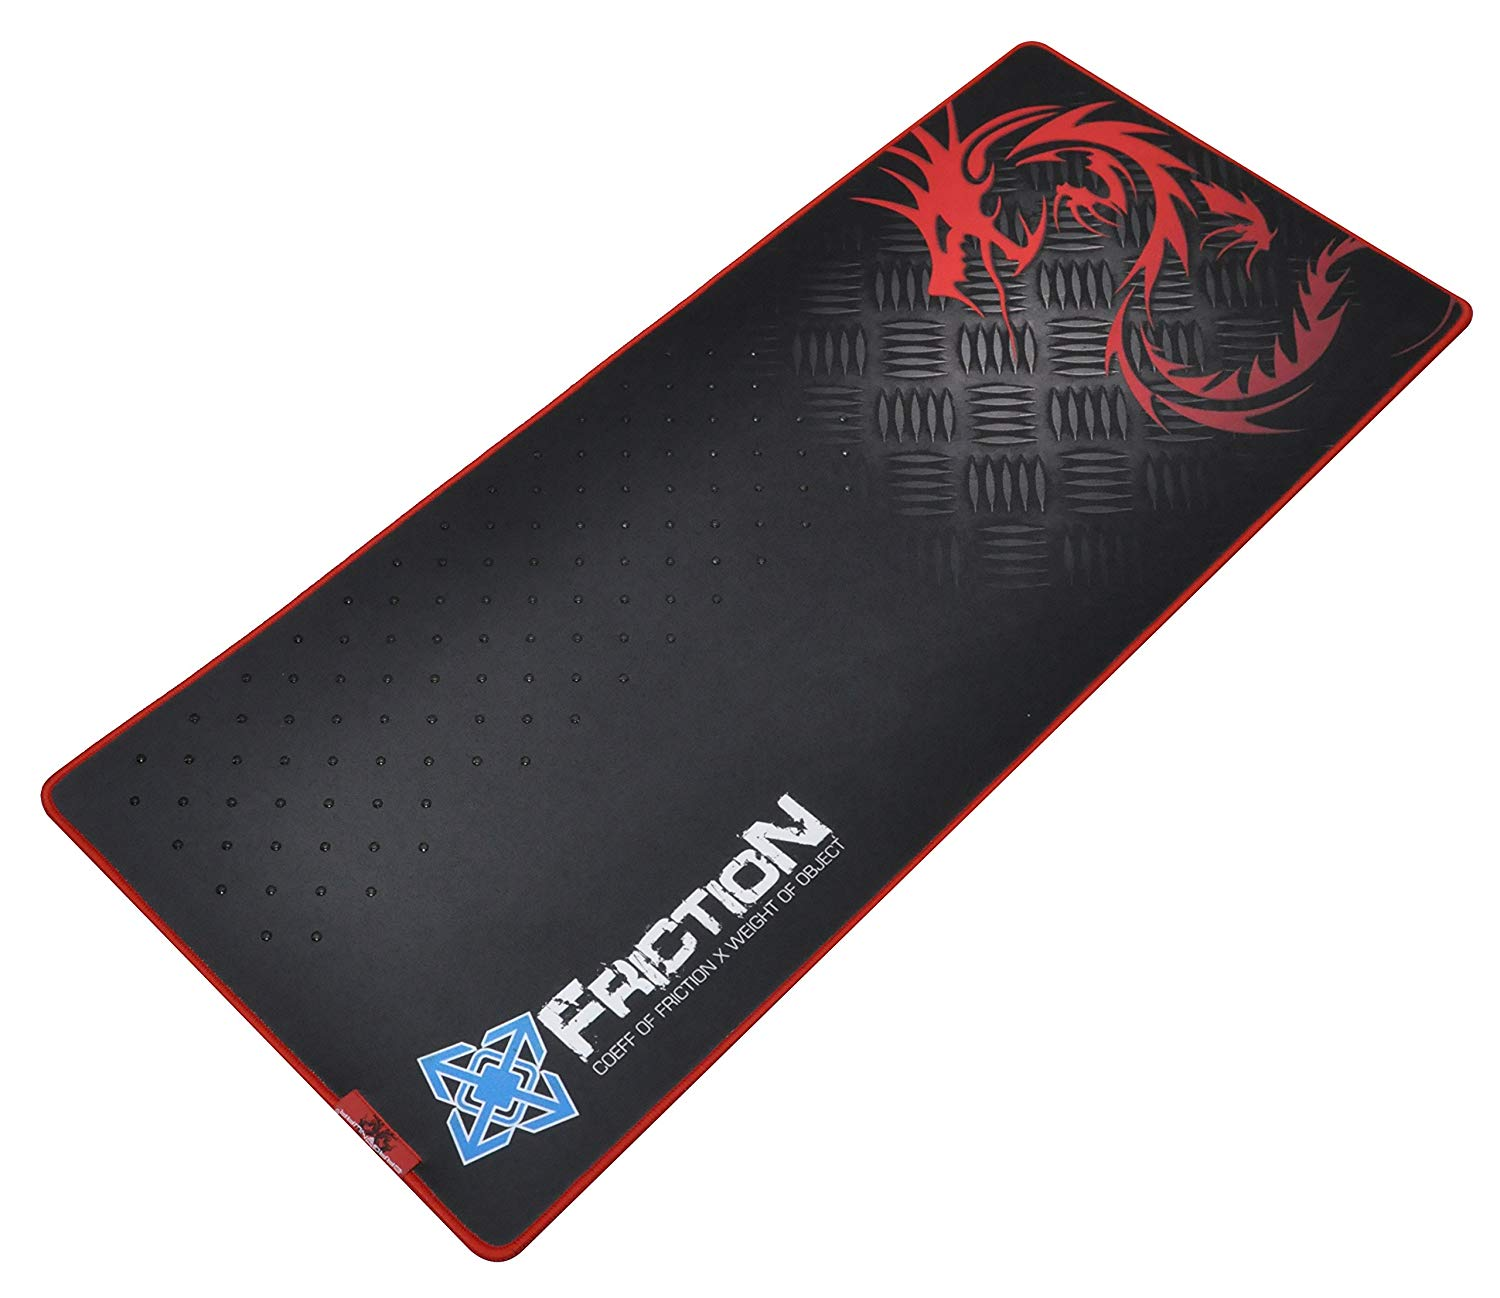 Mouse Pad Extended DragonWar Friction Speed